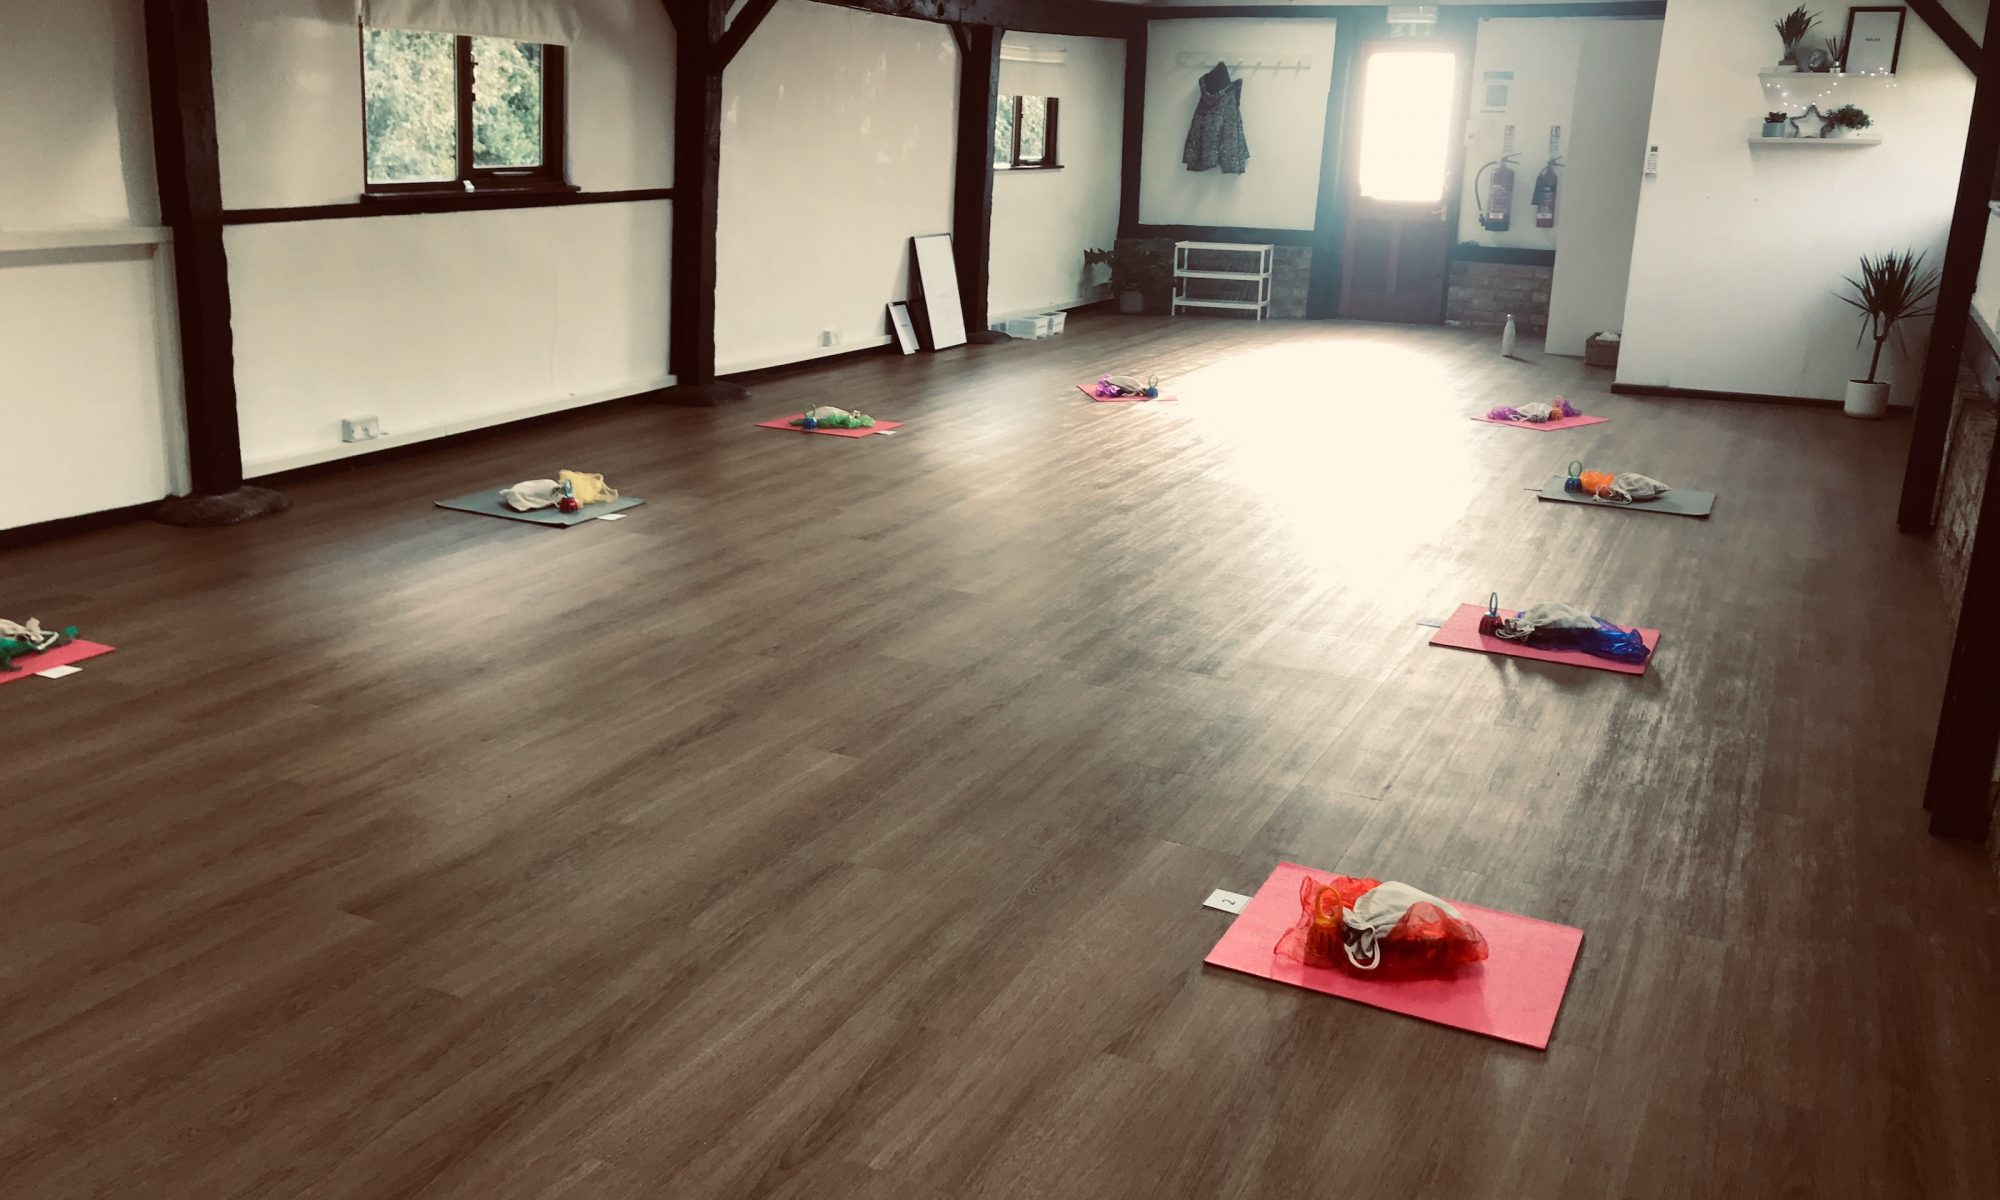 pregnancy and baby classes buckingham